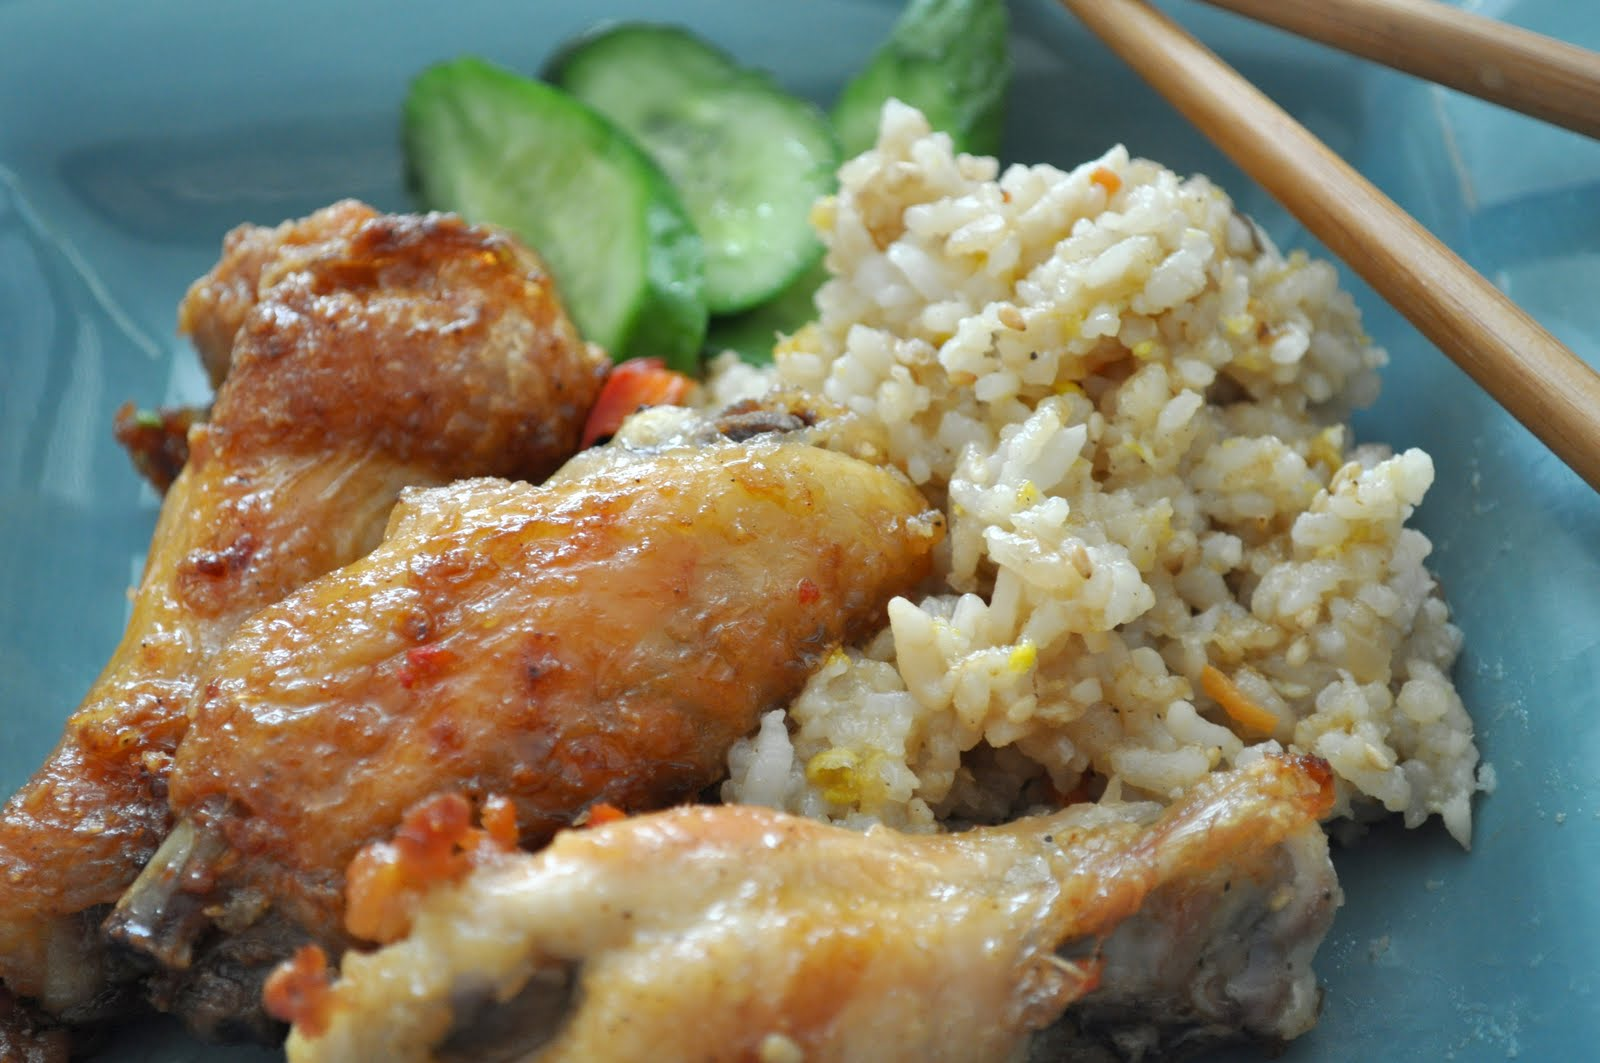 ... chicken wings momofuku chicken wings singaporean chicken rice wings